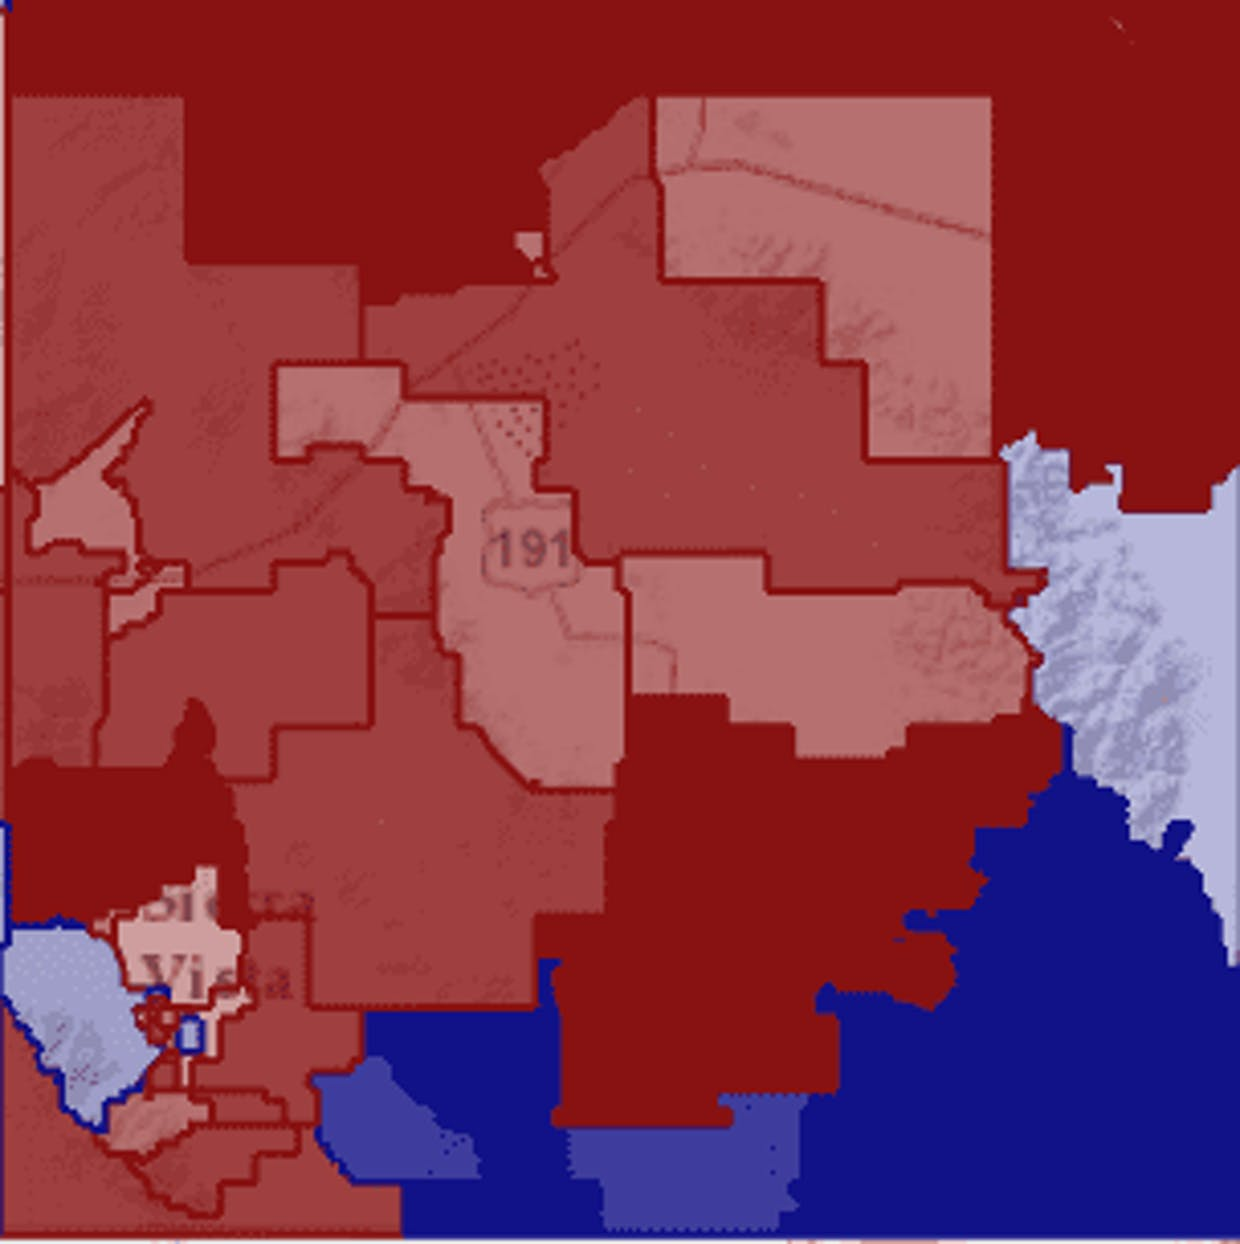 U.S. President votes by precinct in CC